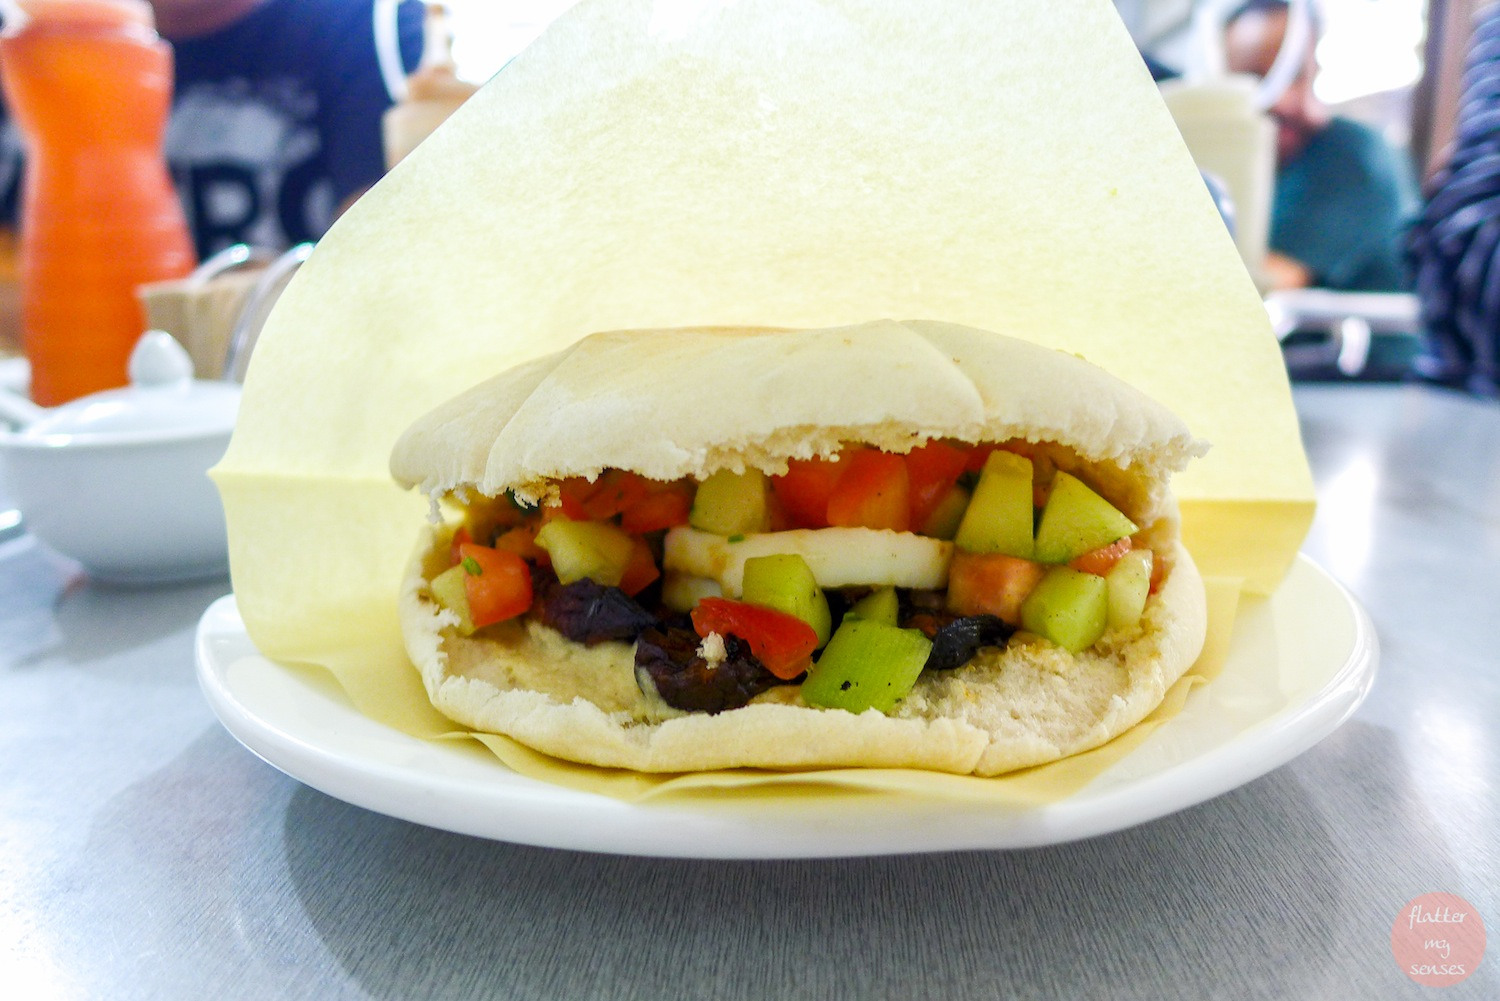 Sabich (Php 165). This includes humus, eggplant, boiled egg andsalad in there.